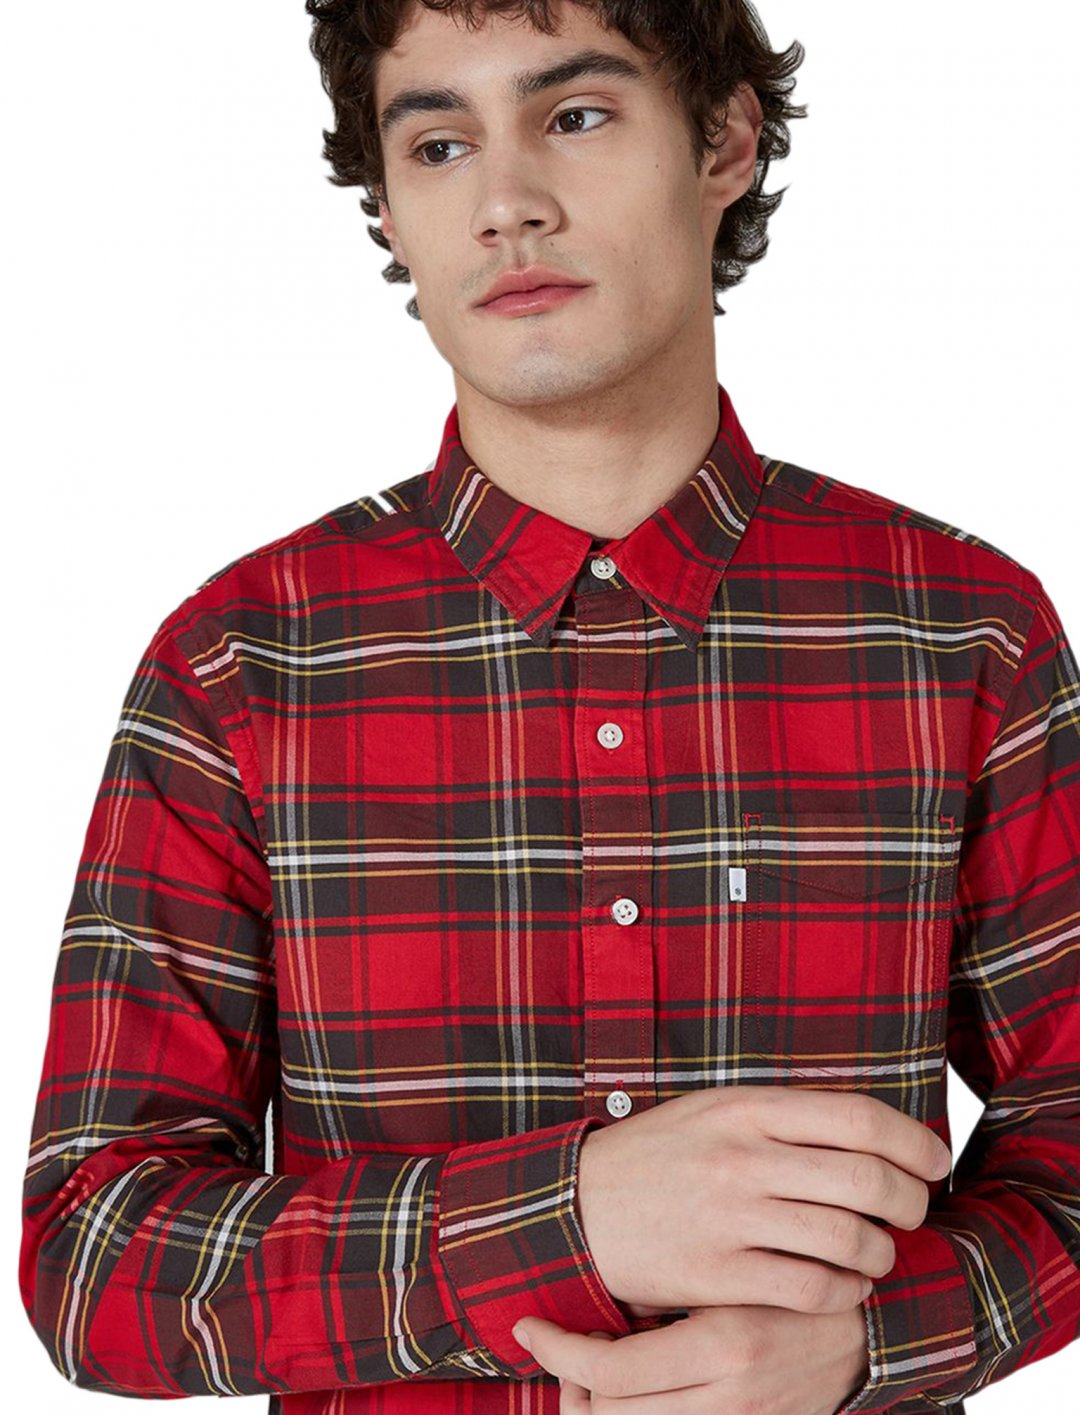 Levi's 'Sunset' Shirt Clothing Levi's